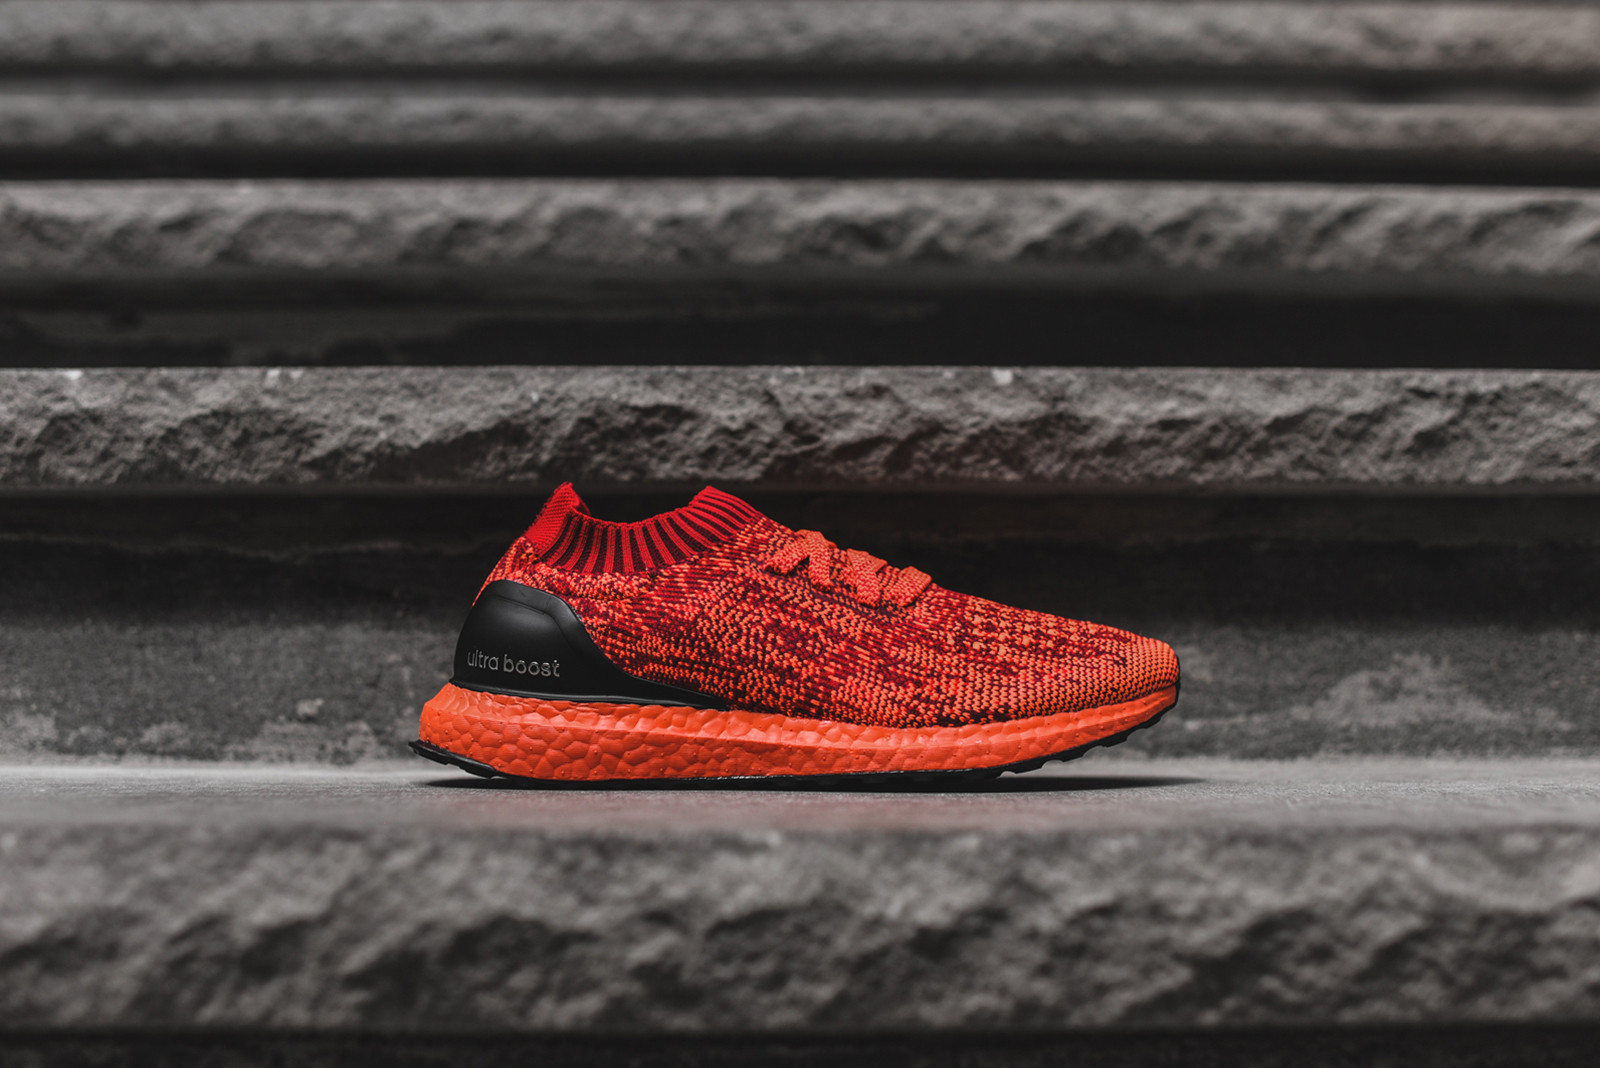 watch 808b5 42fe6 Very Goods | adidas Ultra Boost Uncaged - Triple Red | Kith NYC